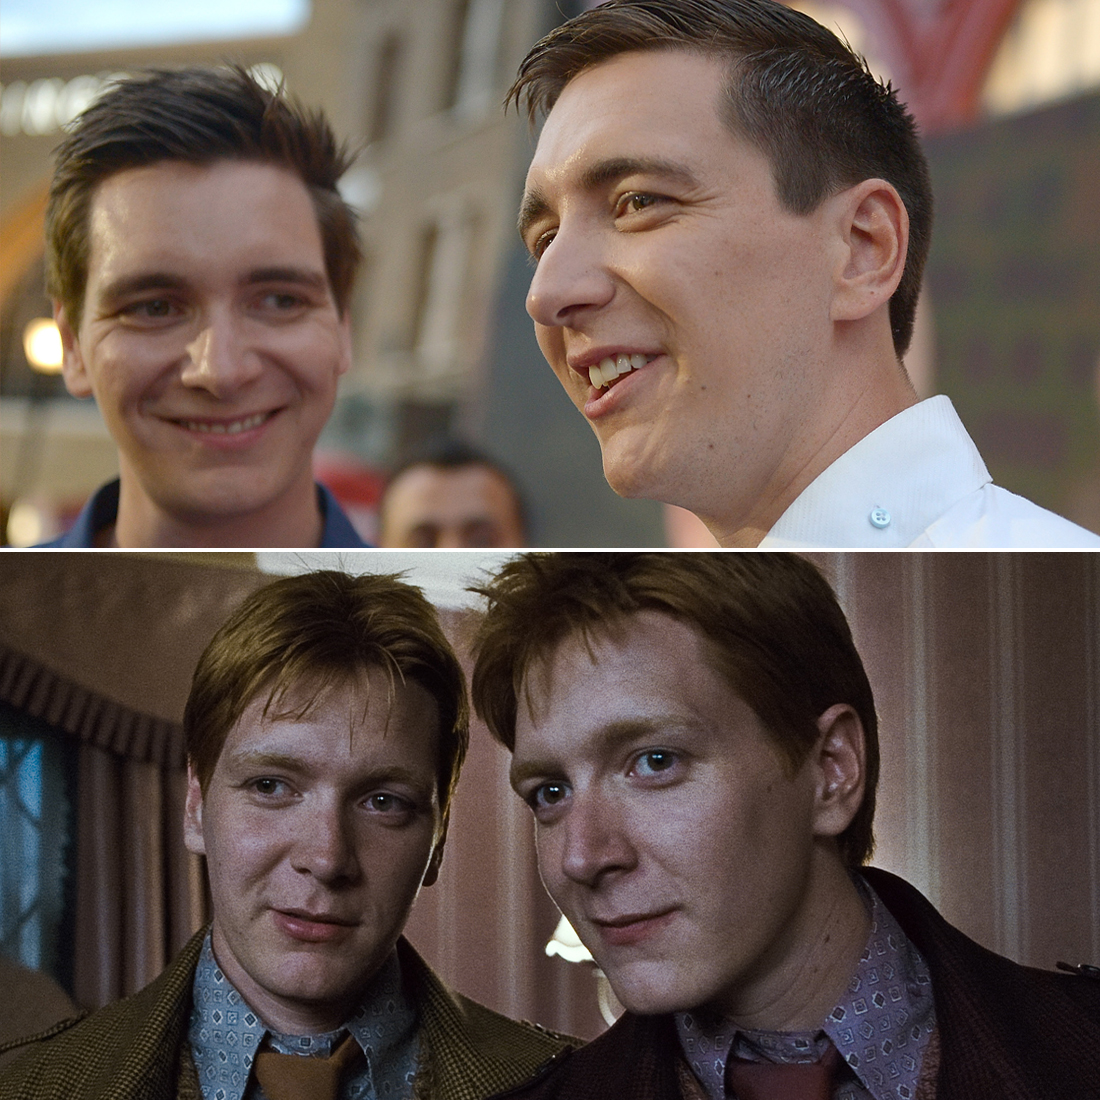 James Phelps (left), Fred Weasley